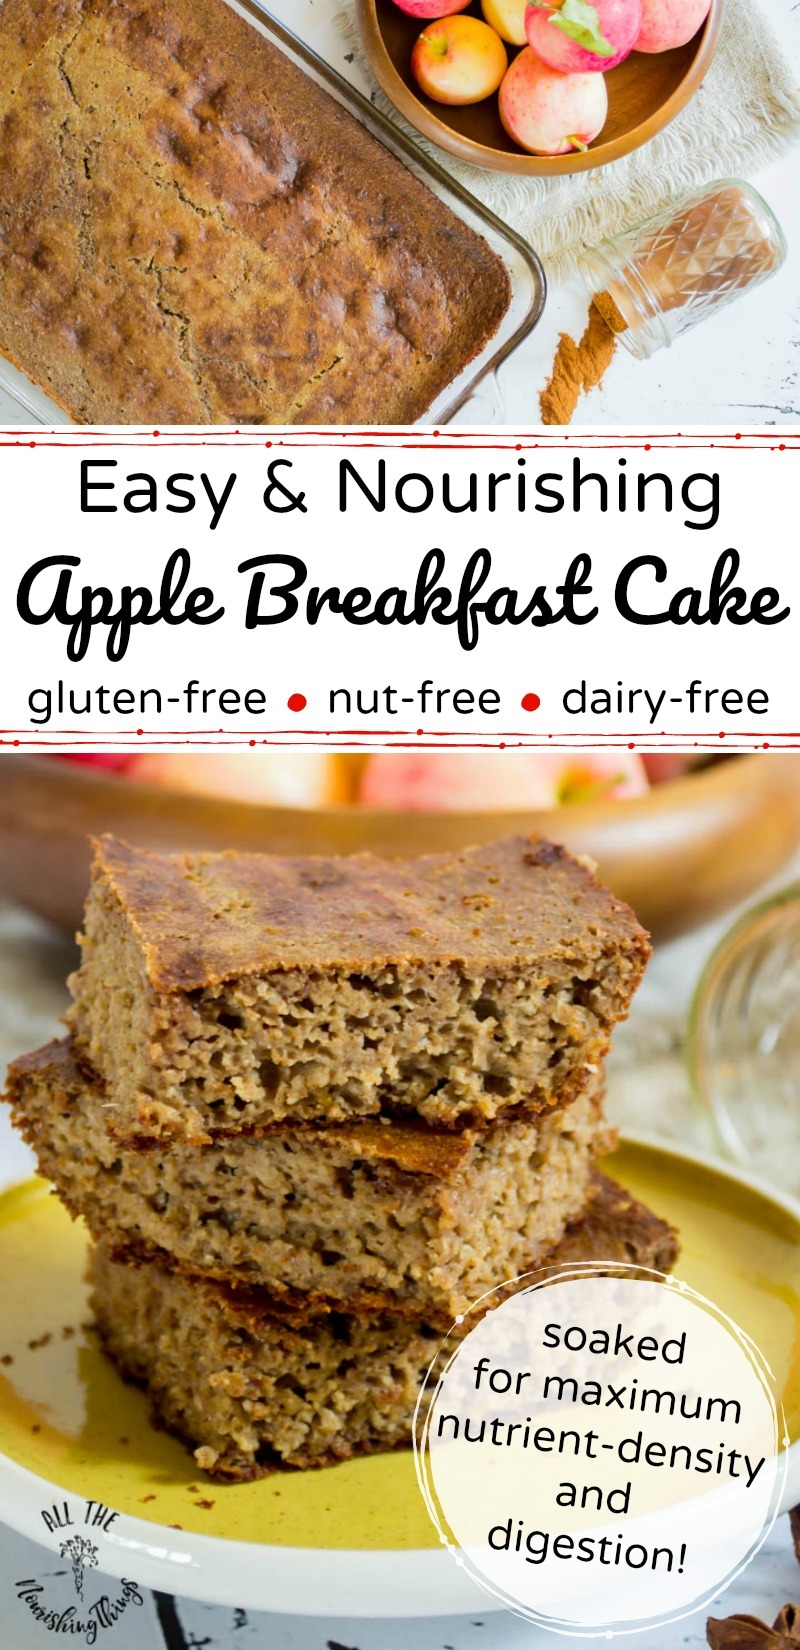 nourishing soaked apple breakfast cake with text overlay